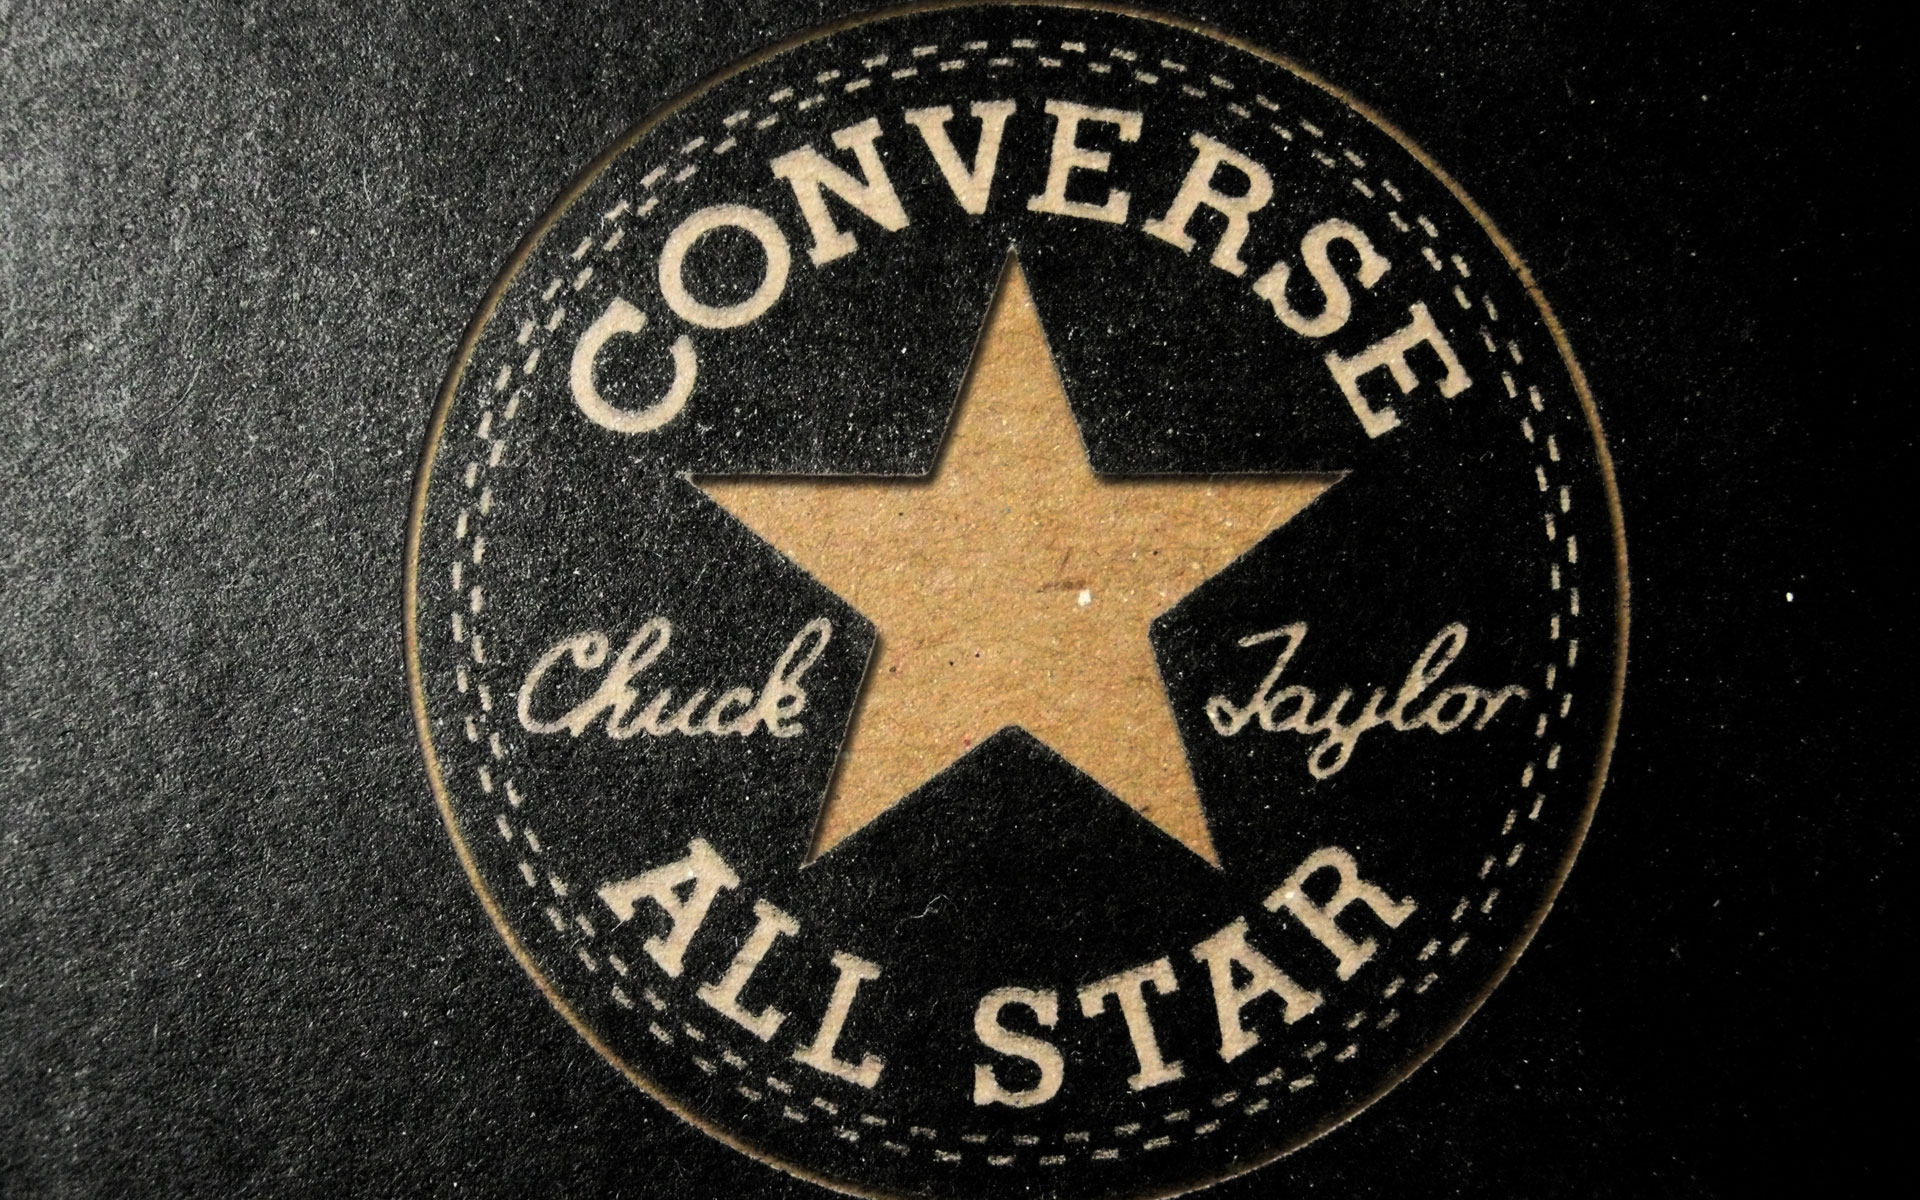 Converse All Star Logo Wallpaper HD